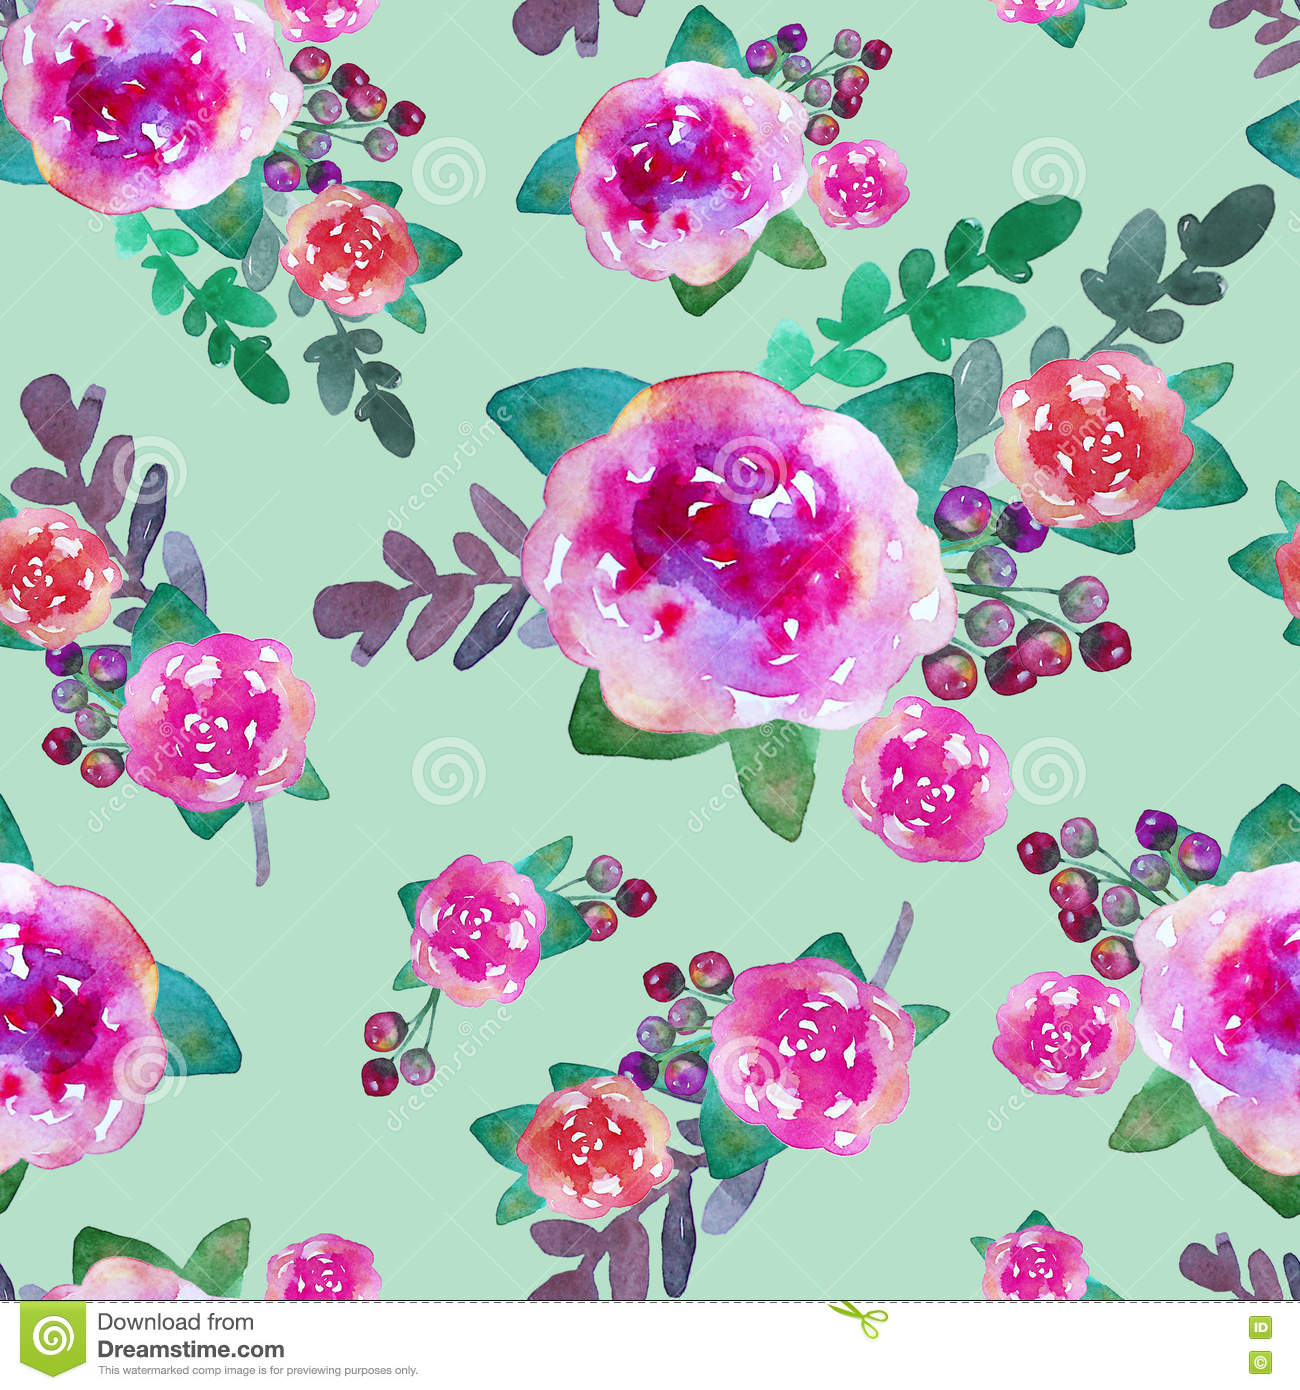 Vintage floral seamless pattern with rose flowers and leaf. Print for textile wallpaper endless.